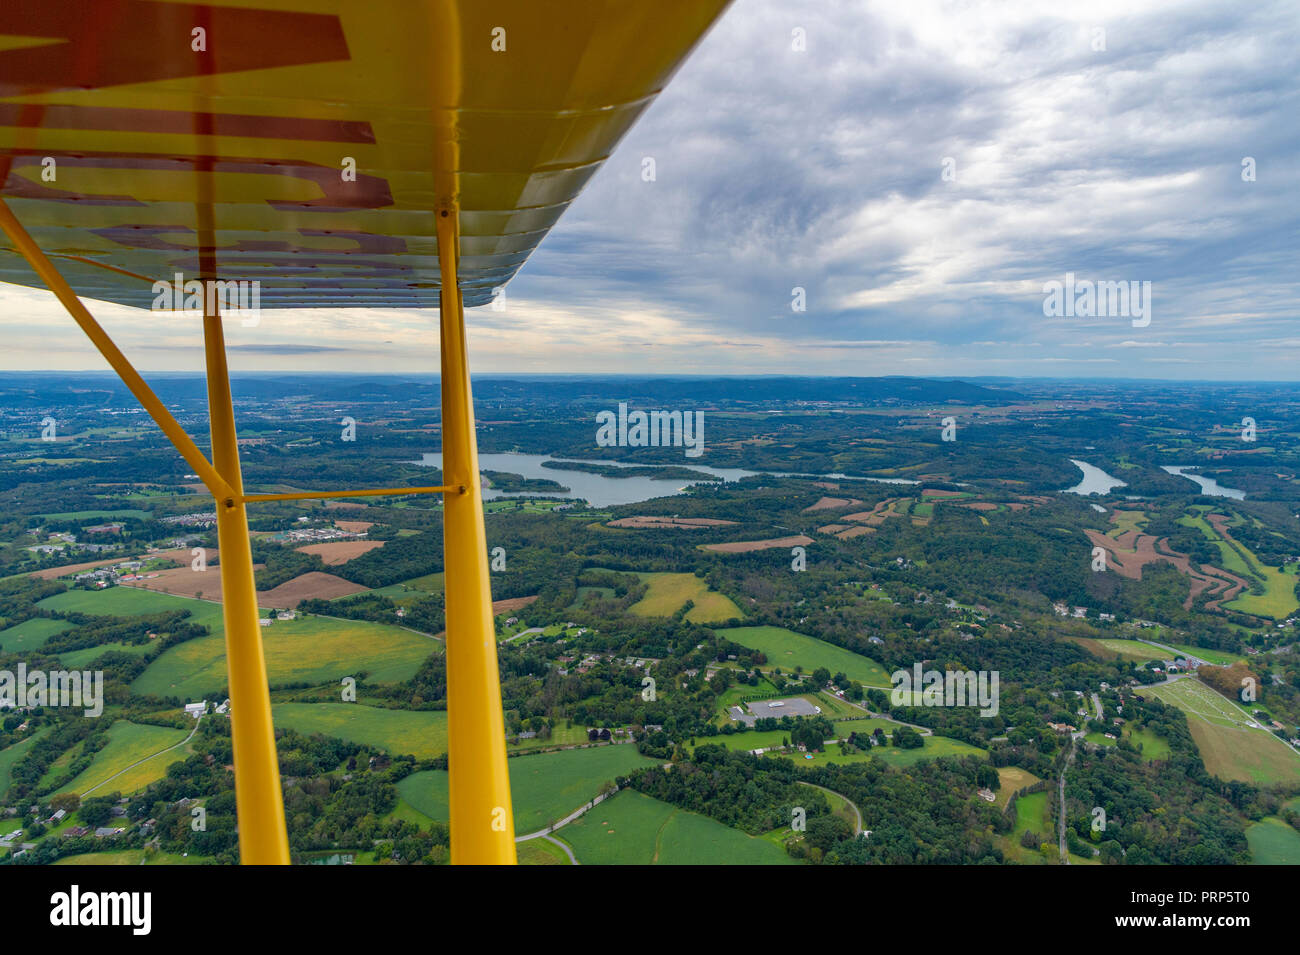 Aerial View from small plane cockpit, Pennsylvania, USA - Stock Image